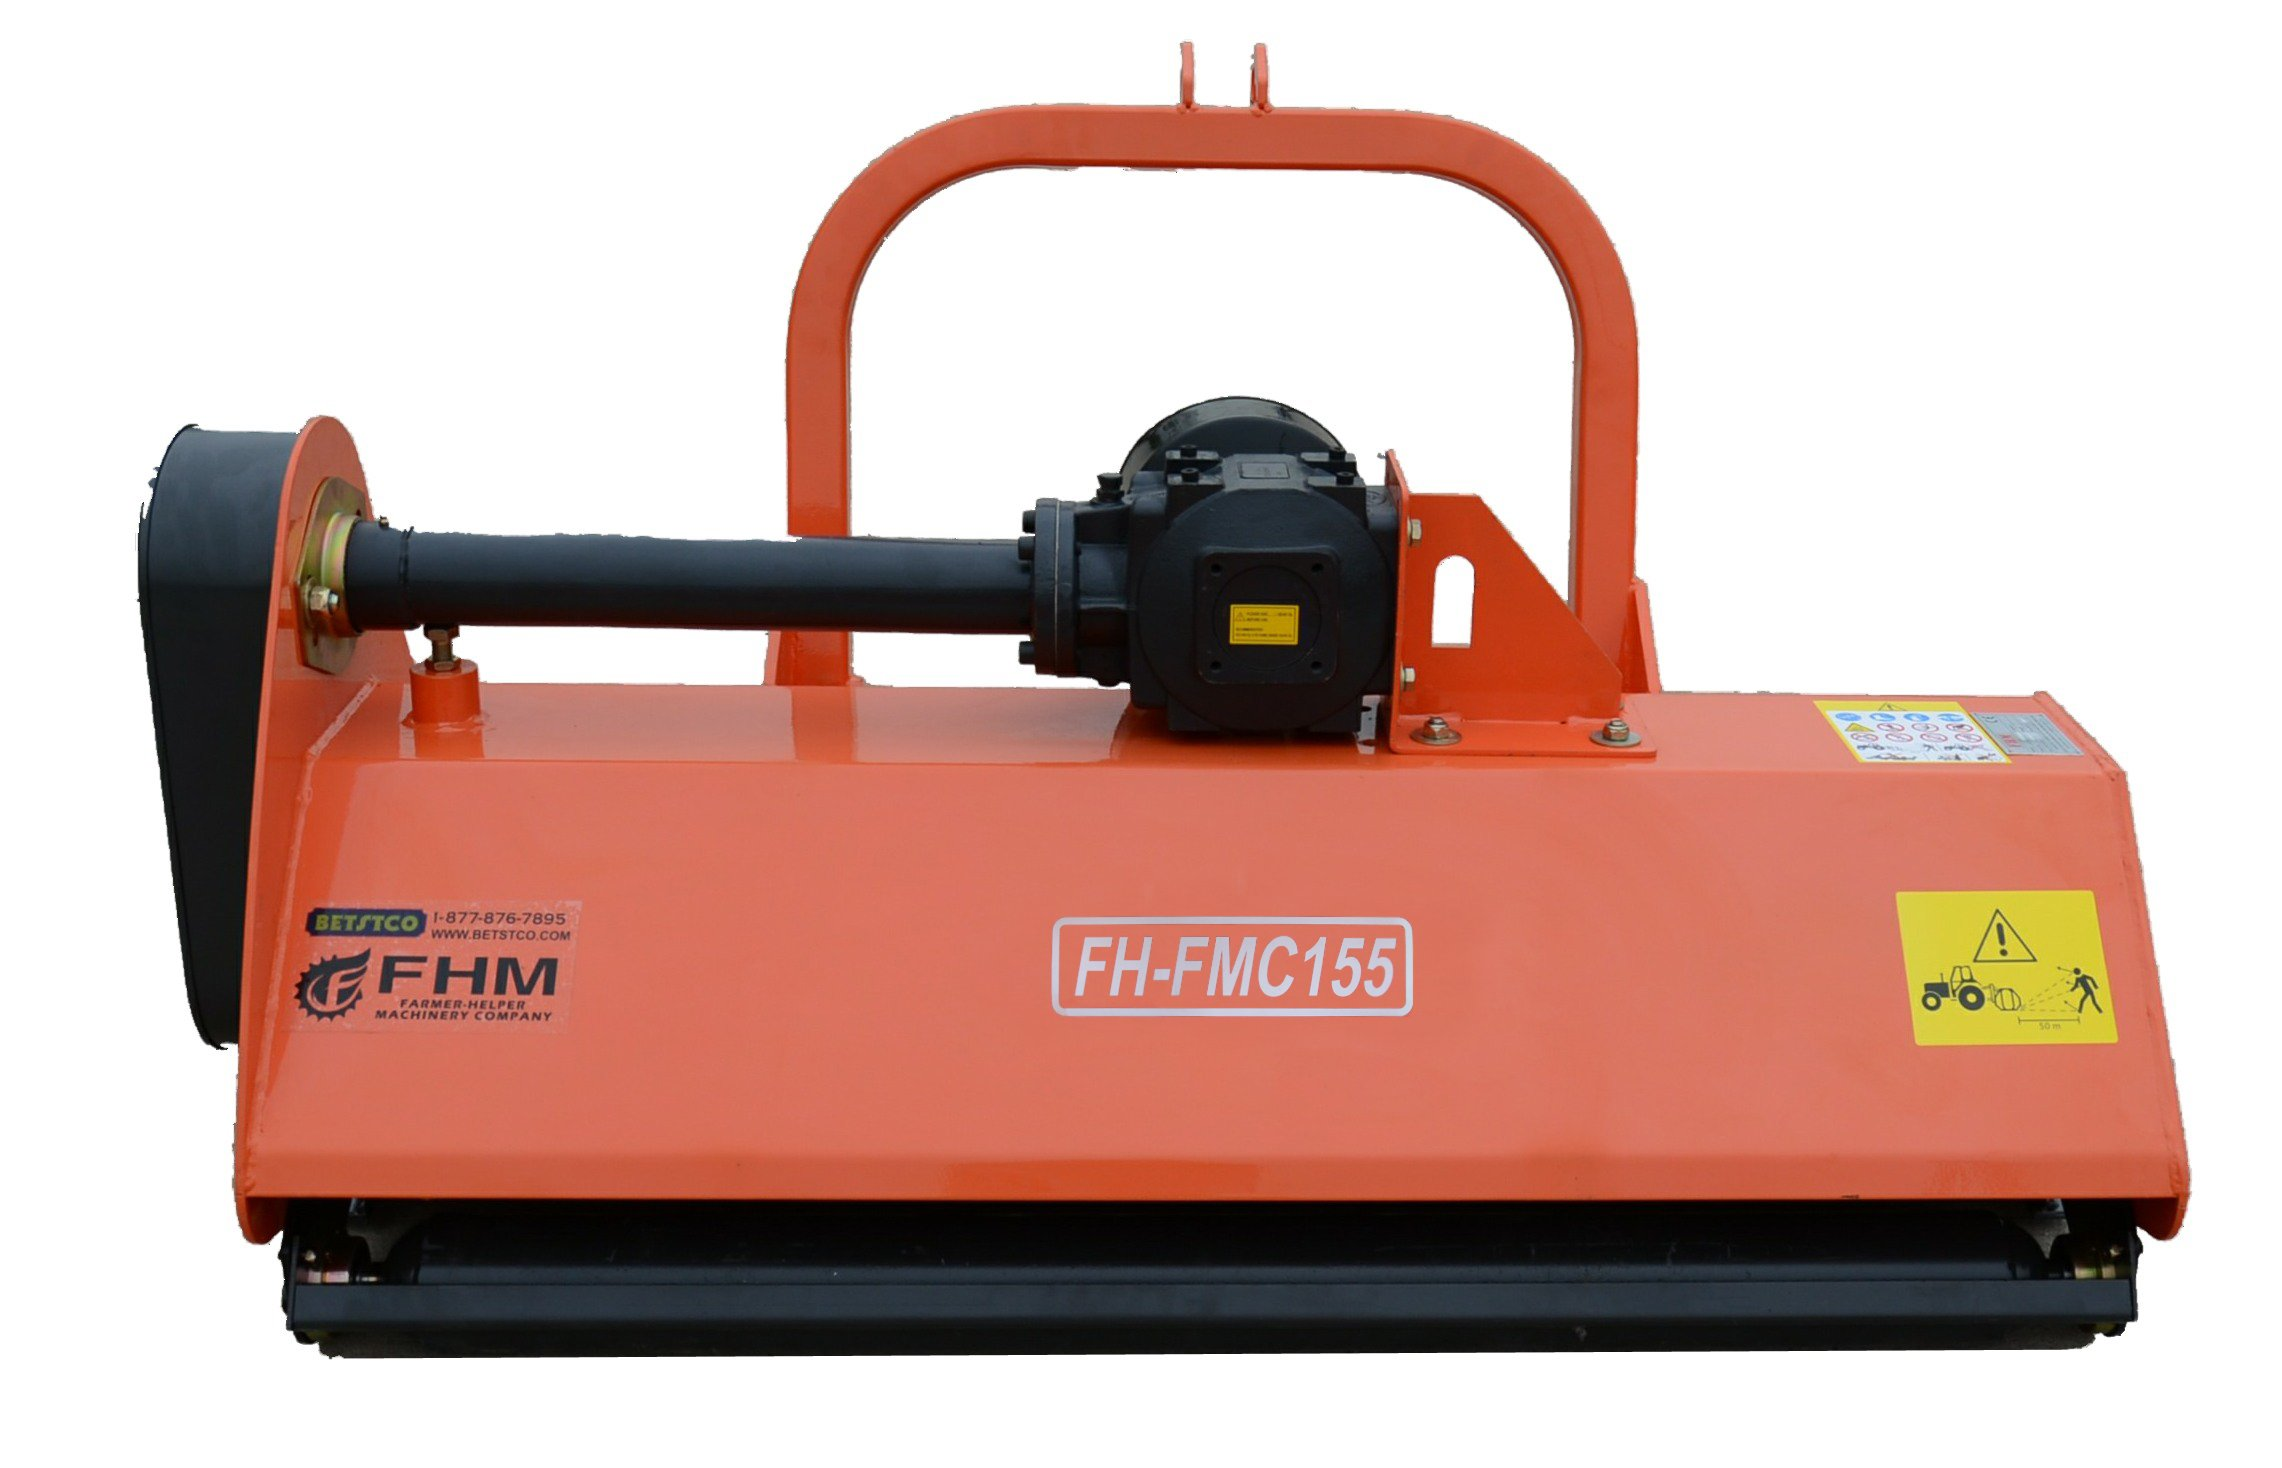 60'' Centered Heavy Duty Flail Row Mower with Hammer Blades 3 Point Requires a Tractor. Not a standalone Unit.